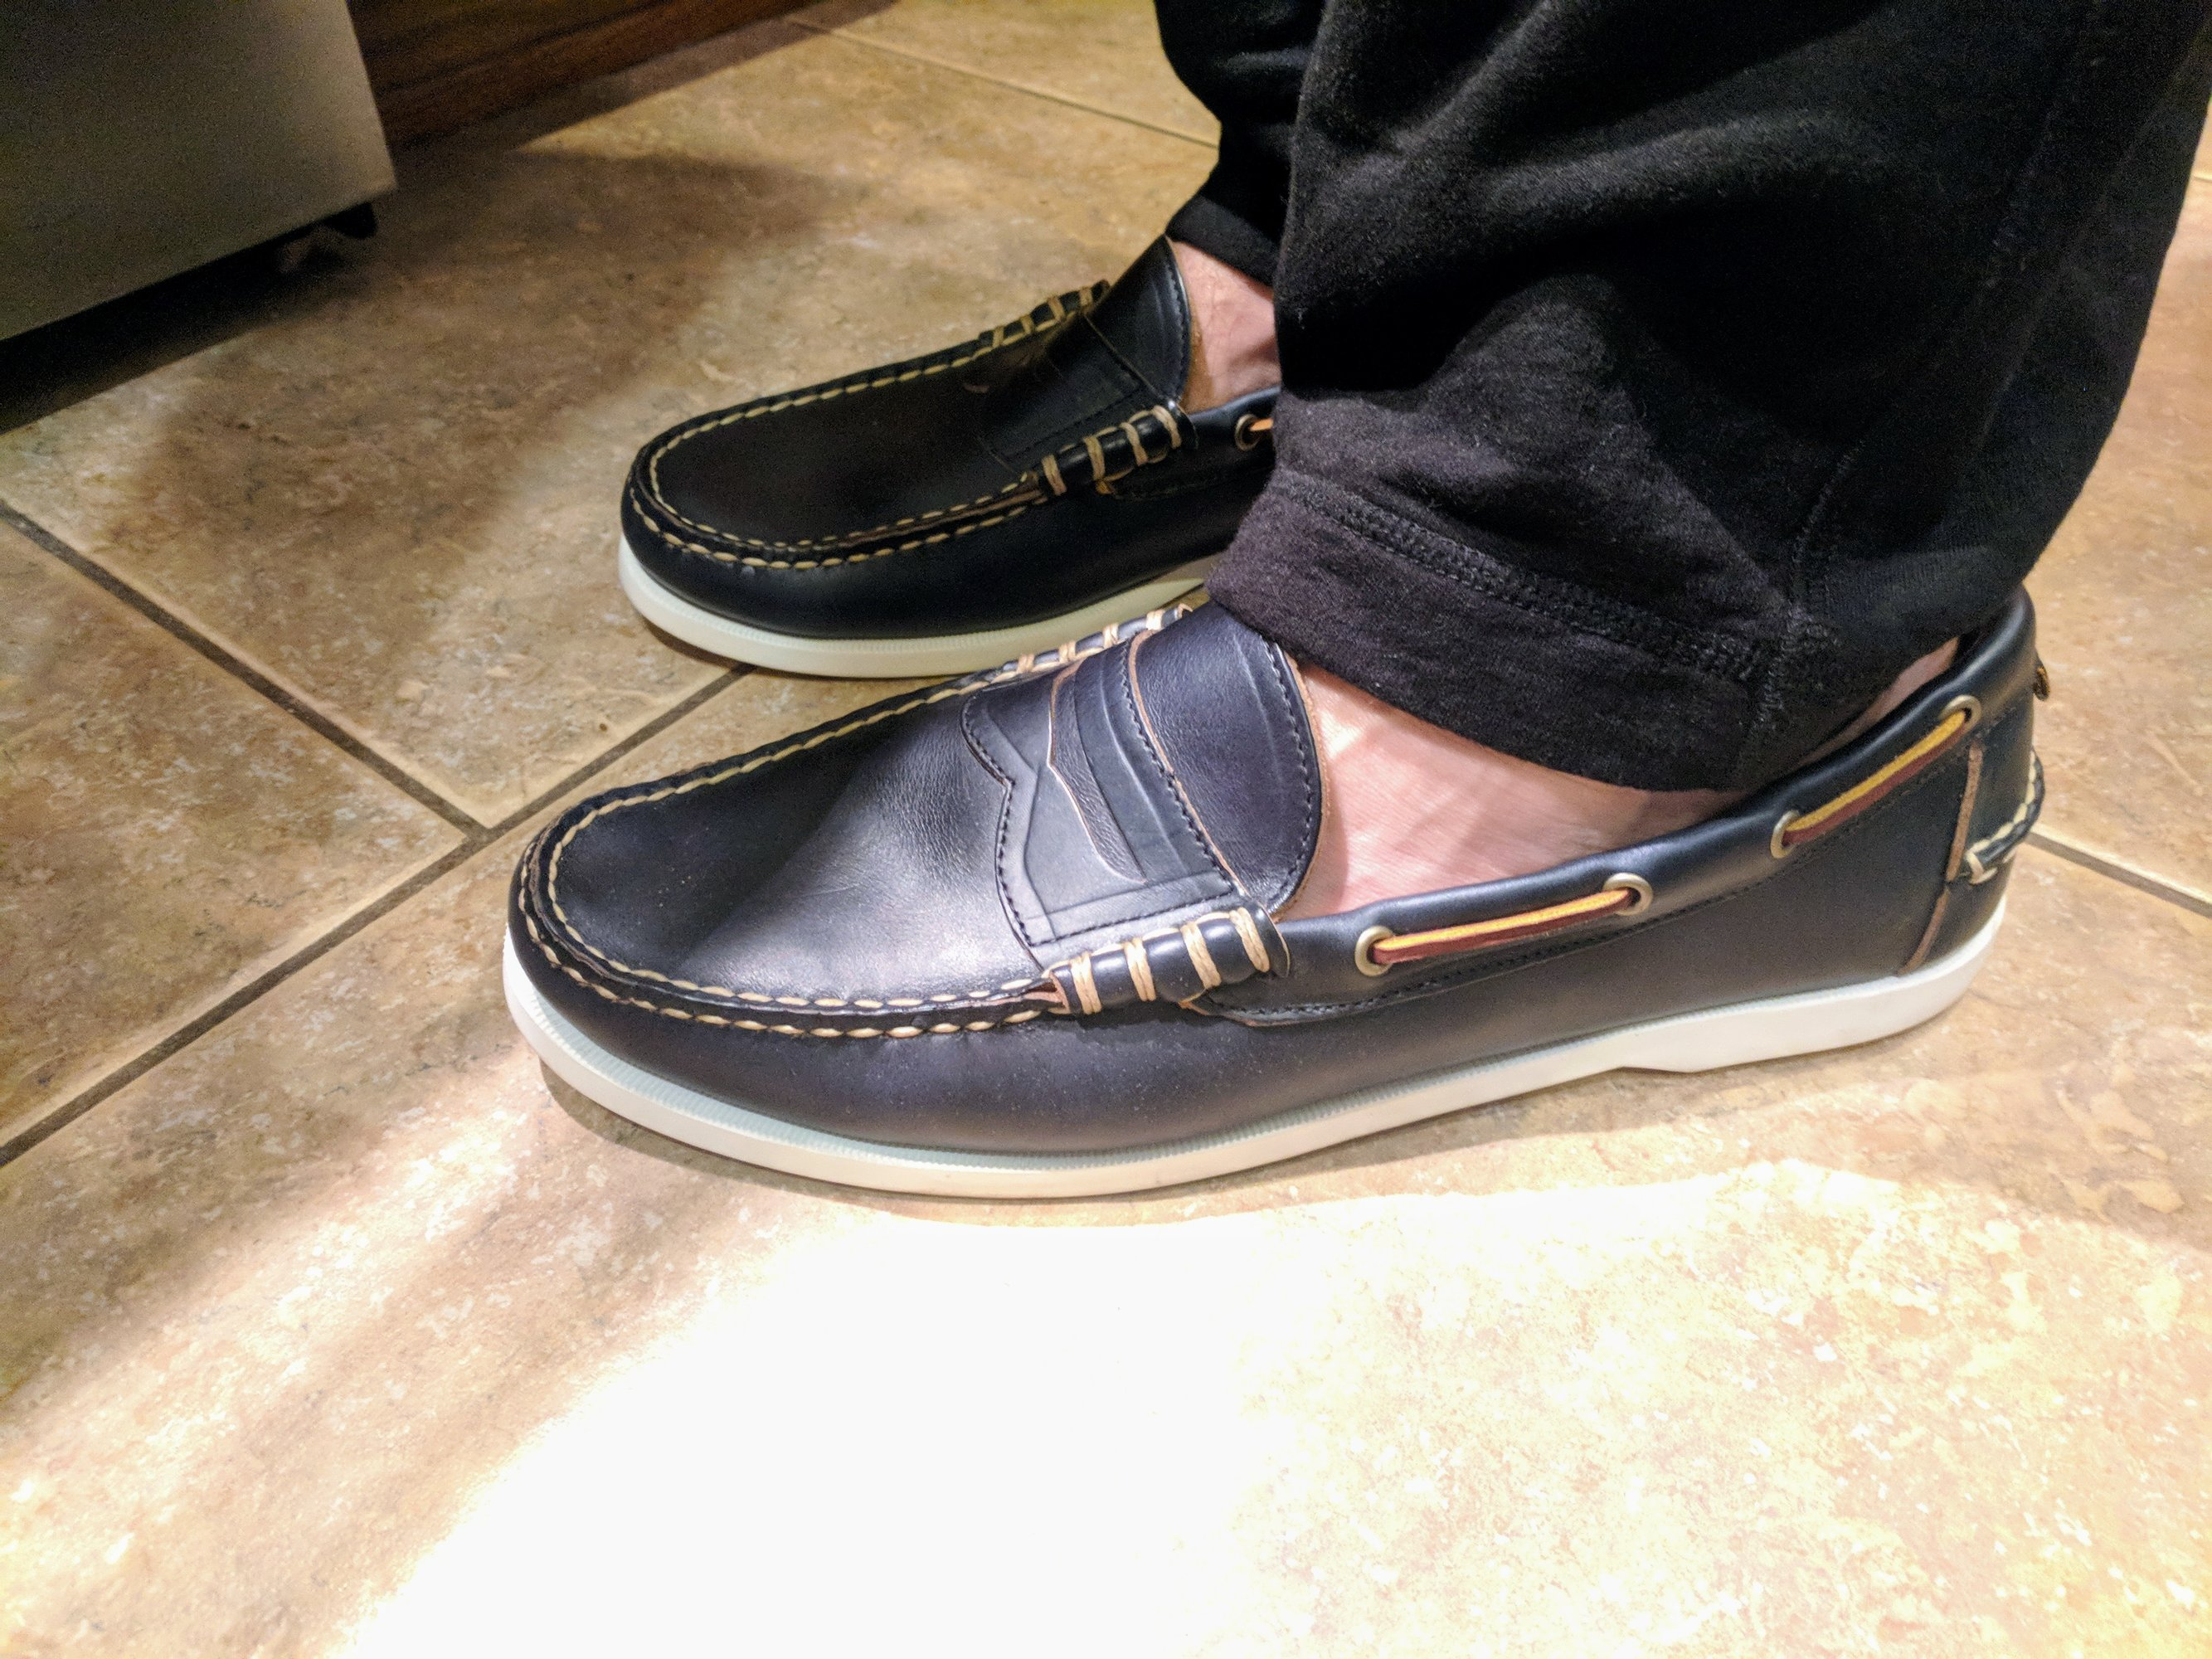 Allen edmonds appreciation thread 2018 news pictures clothing img20180224074417g ccuart Choice Image